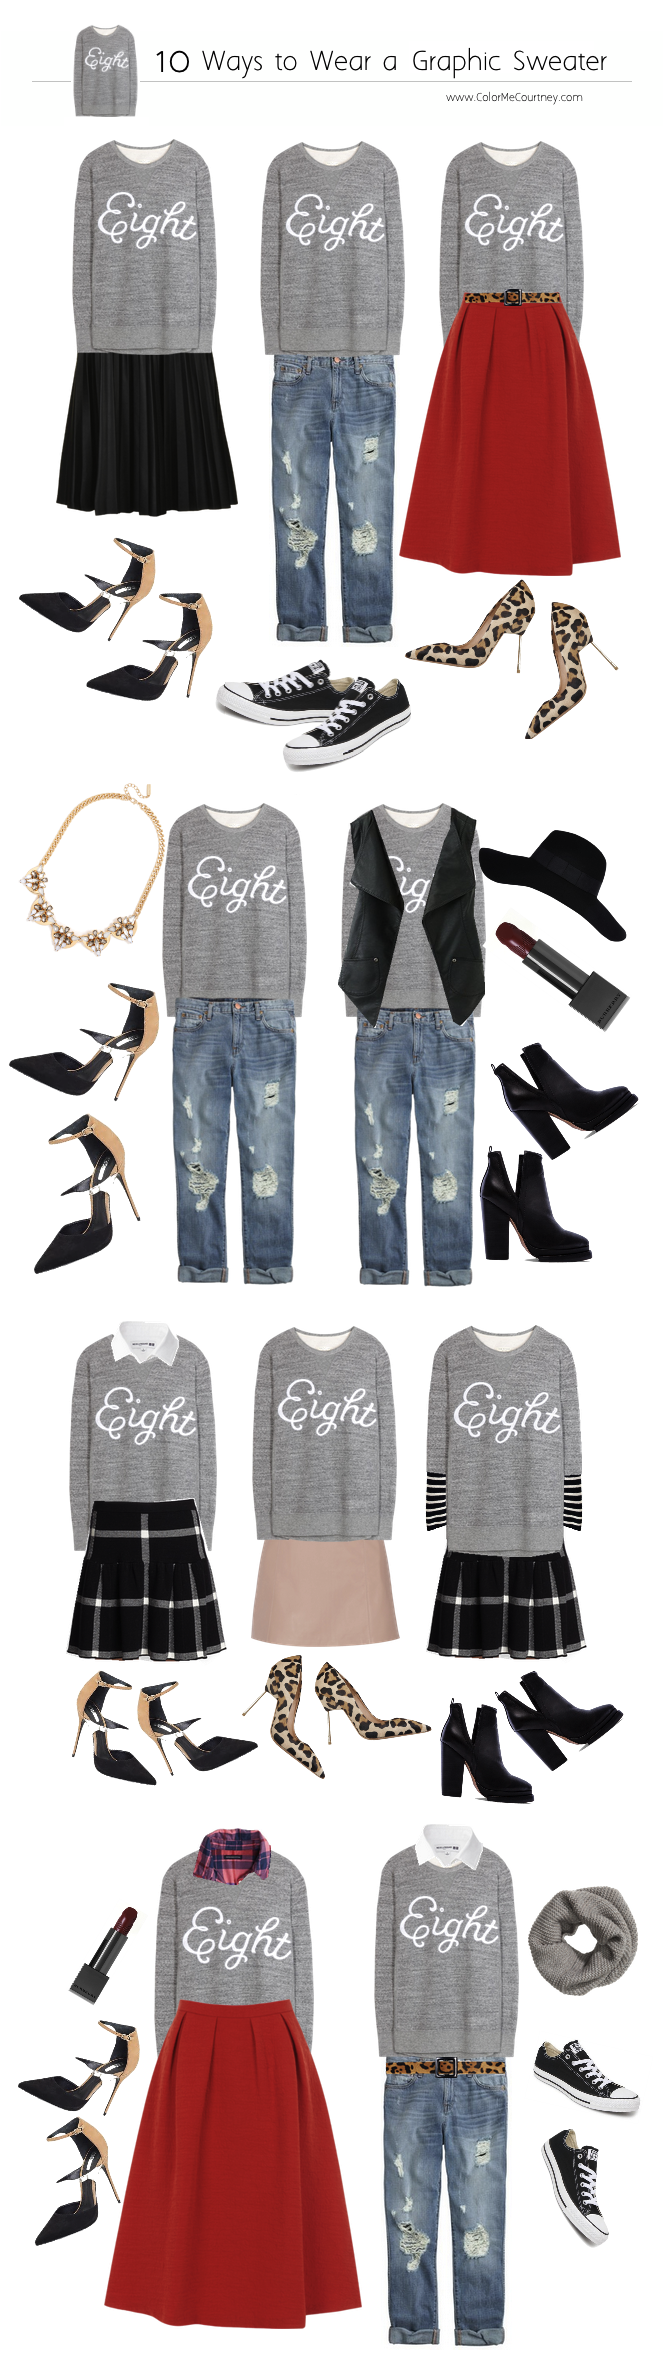 100 outfits create 100 outfits from 10 pieces 10 pieces 100 outfits what to wear for fall fall style guide fall shopping guide what to buy fro fall fall fashion fall fashion guide how to dress for fall what to wear for fall fall fashion guide how to wear a graphic sweater shirt 10 ways to wear a graphic sweatshirt graphic sweater ten ways to wear